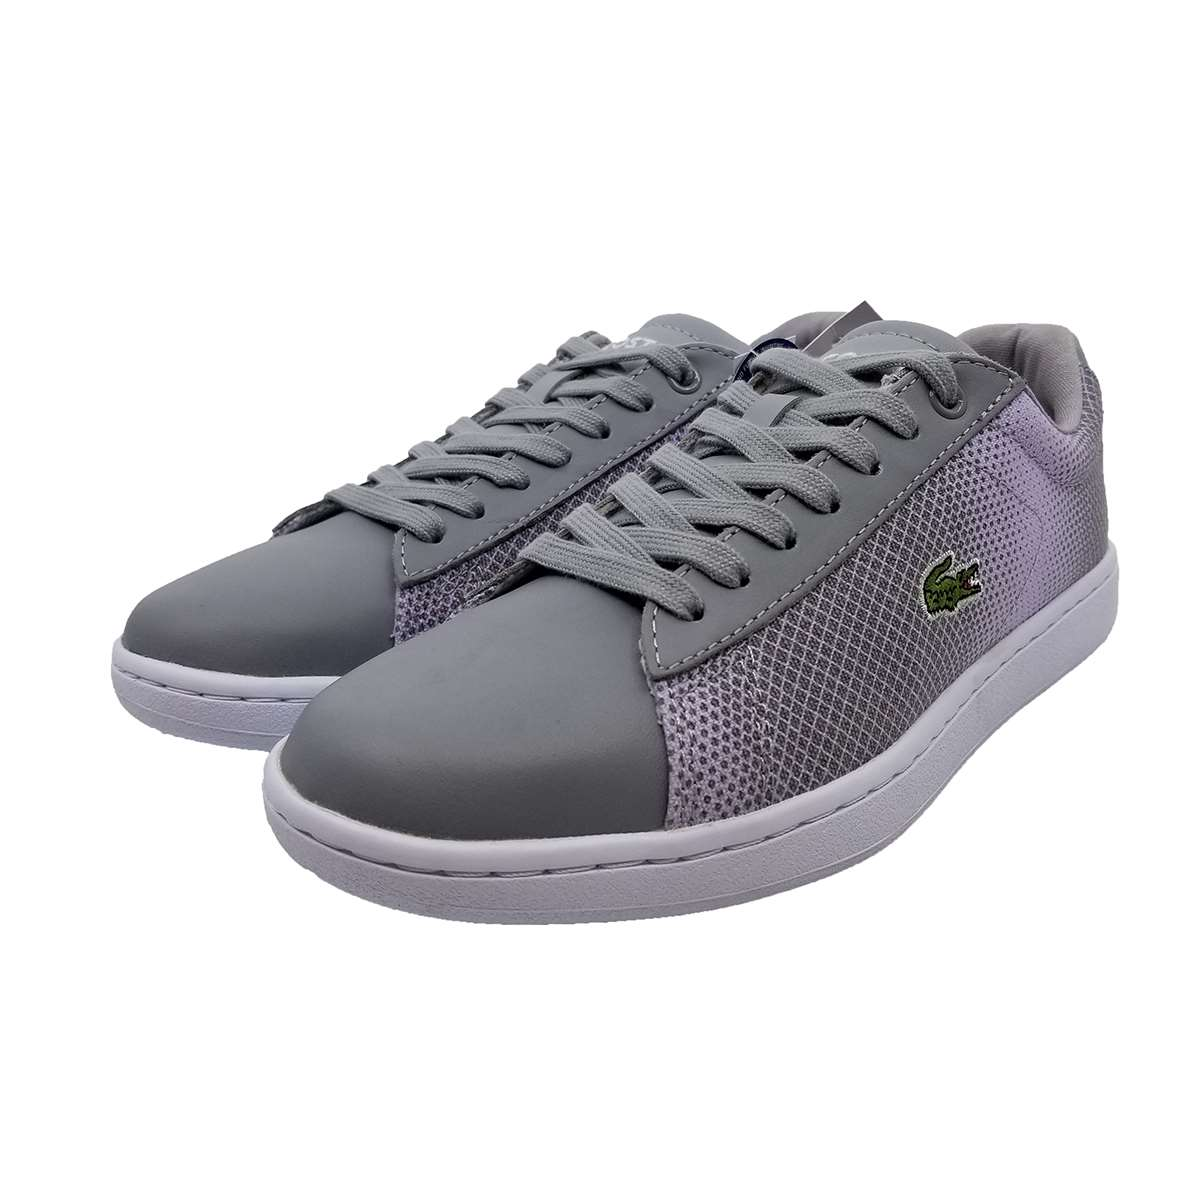 0b3a33a77 Lacoste - Lacoste Women Carnaby Evo 117 2 Spw Fashion Sneakers ...